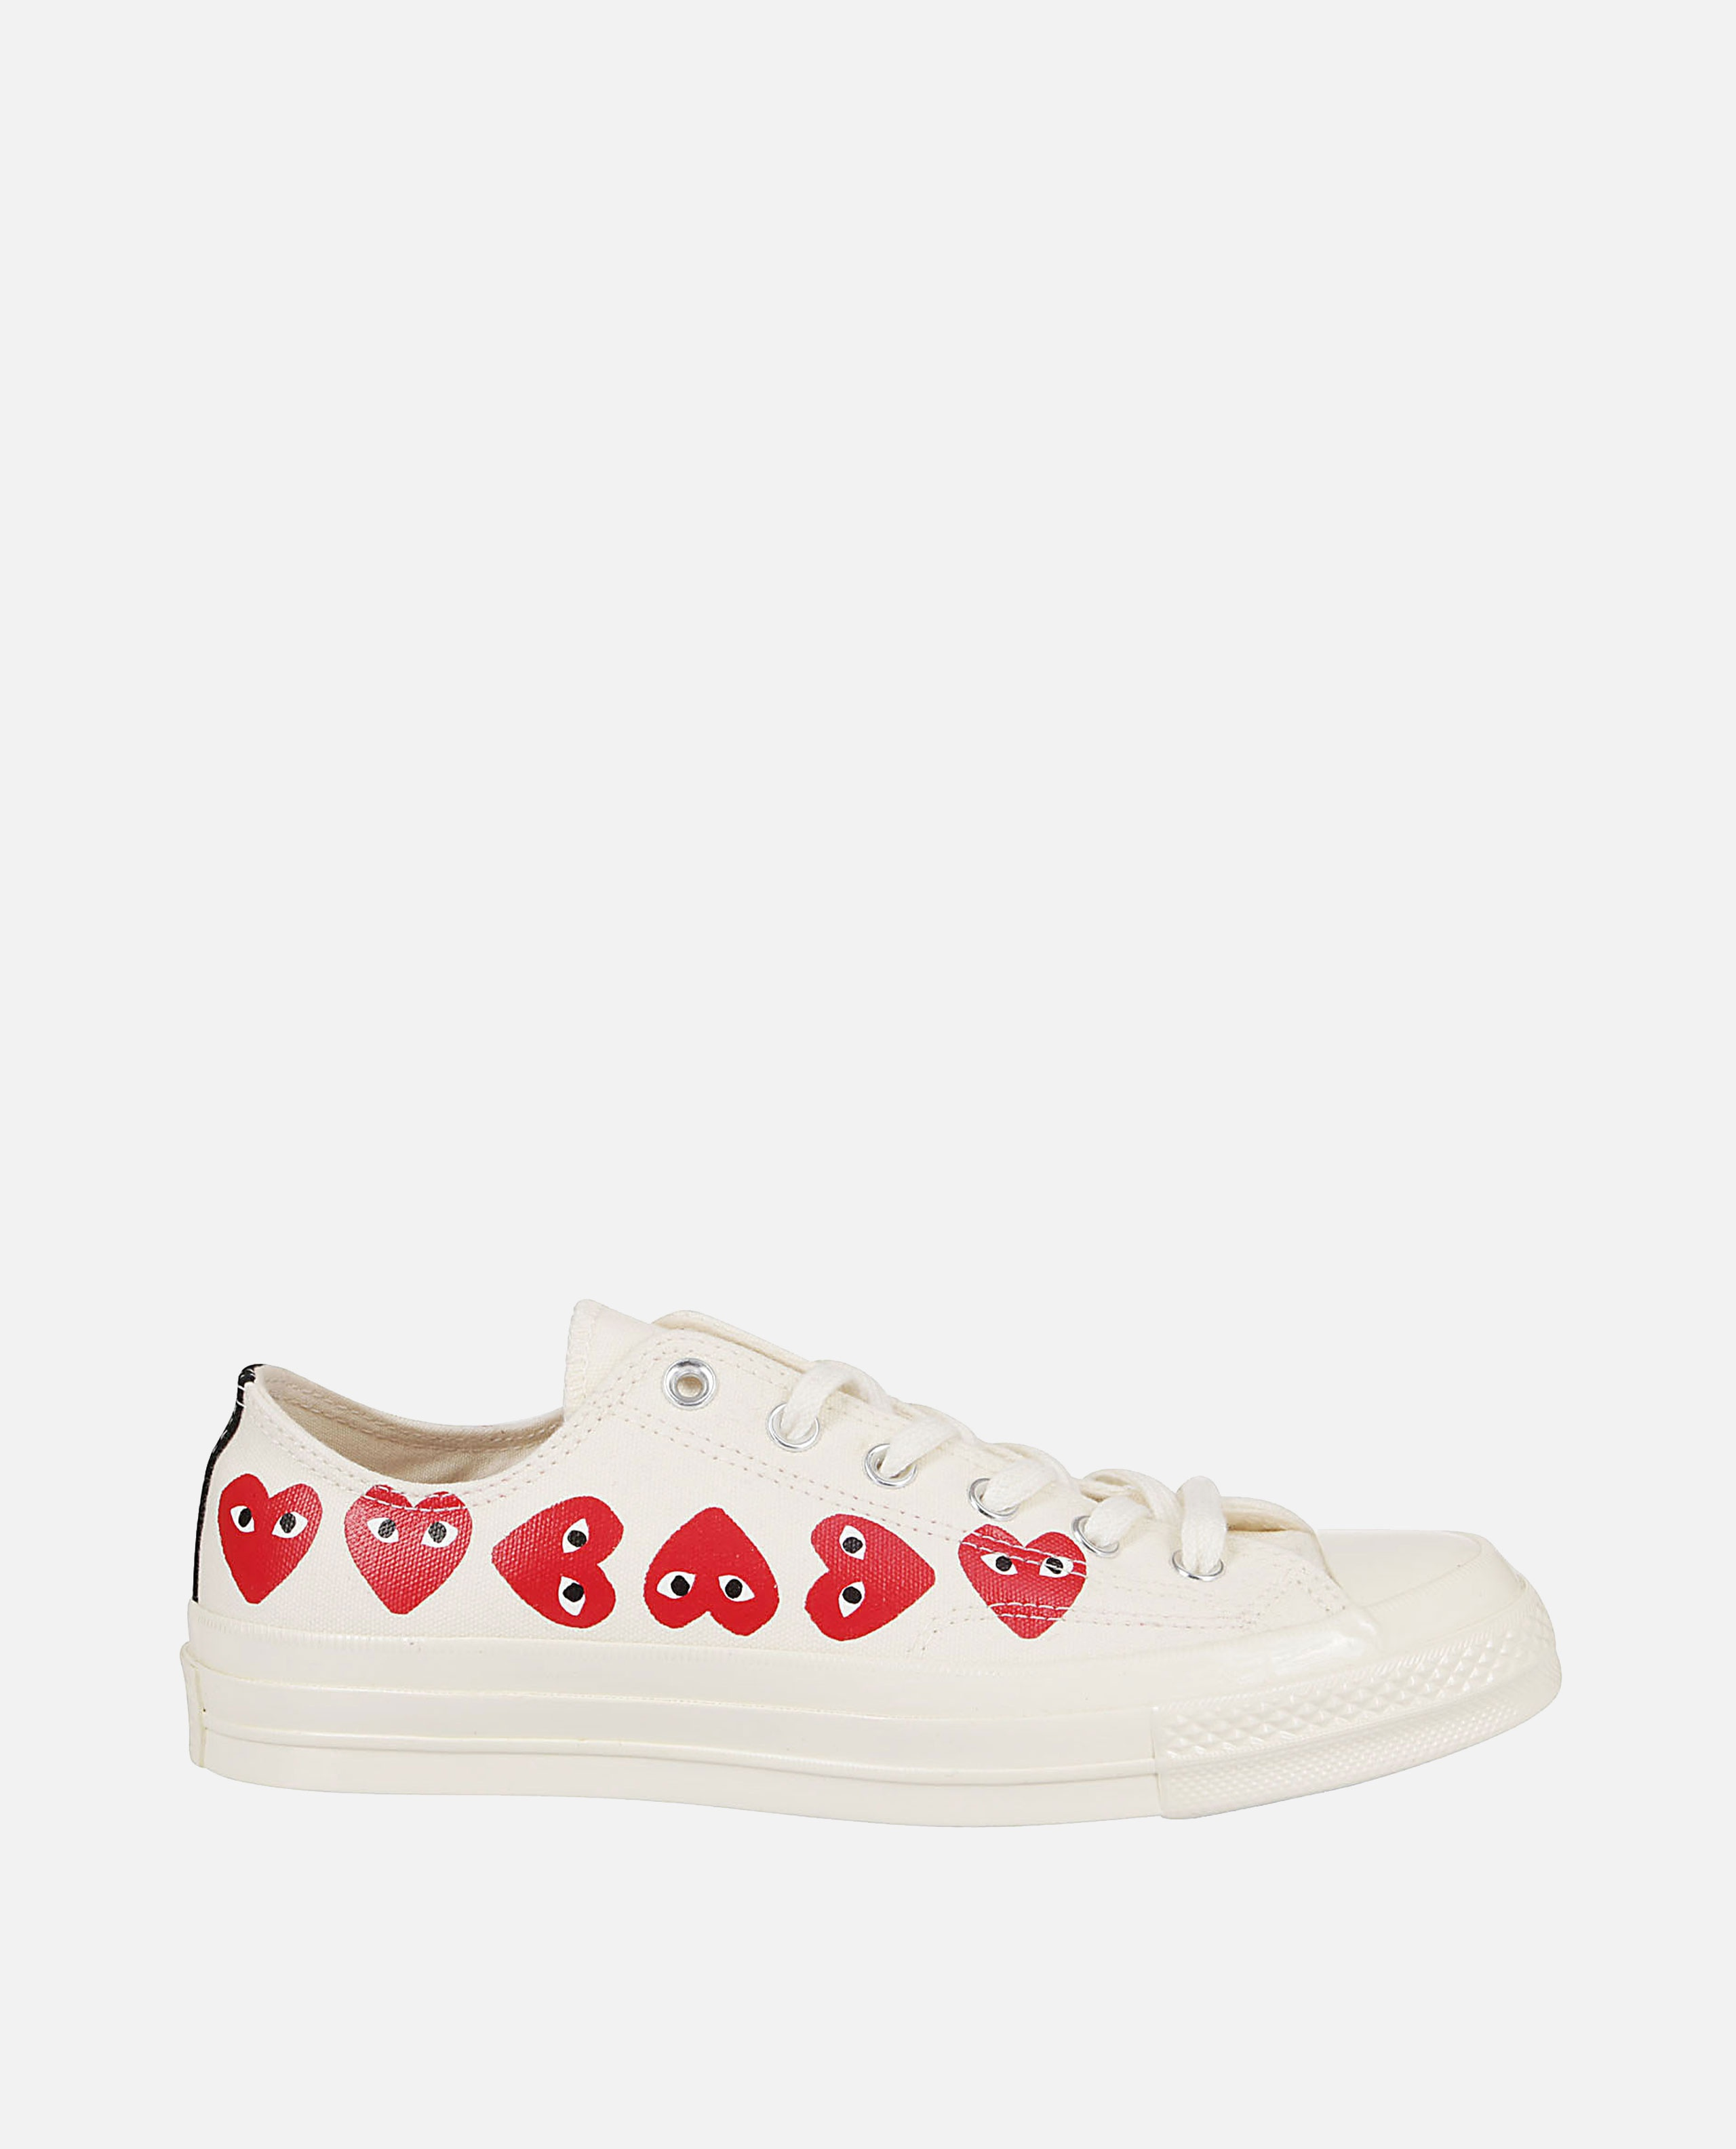 Sneakers Play Converse Women Comme des Garcons Play 000151450022668 1